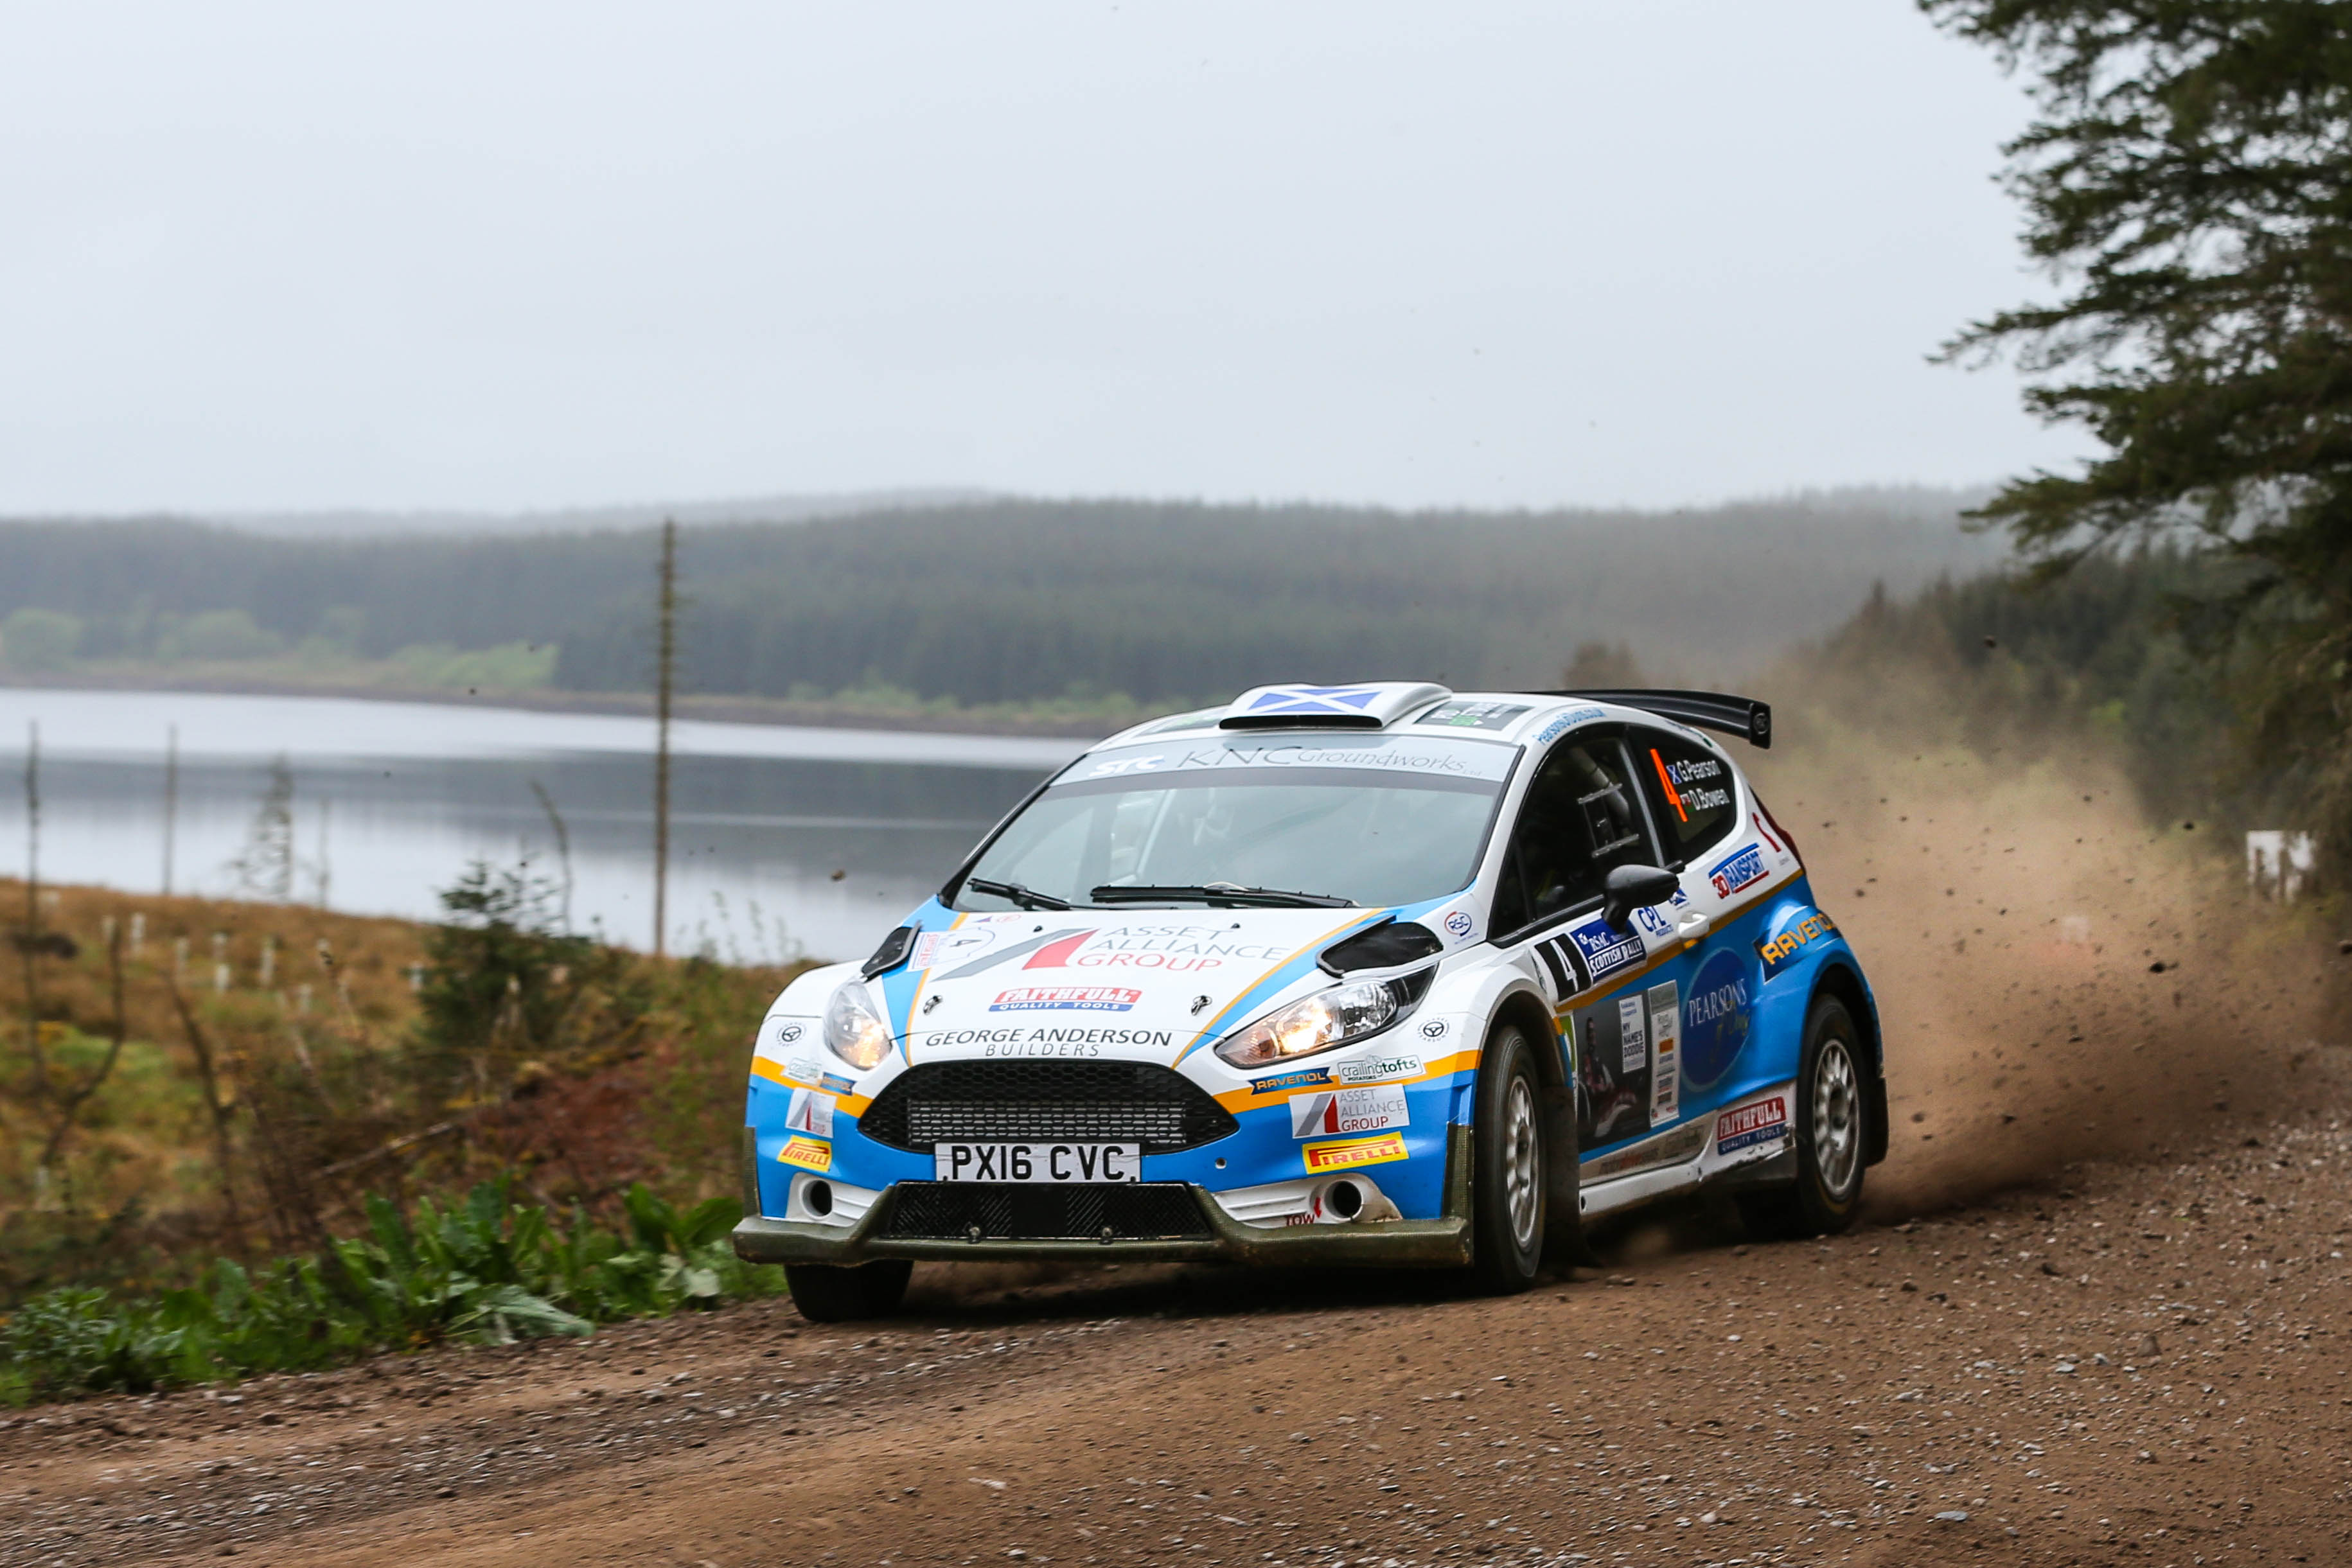 RAVENOL partner Garry Pearson still in SRC title fight after finishing 3rd